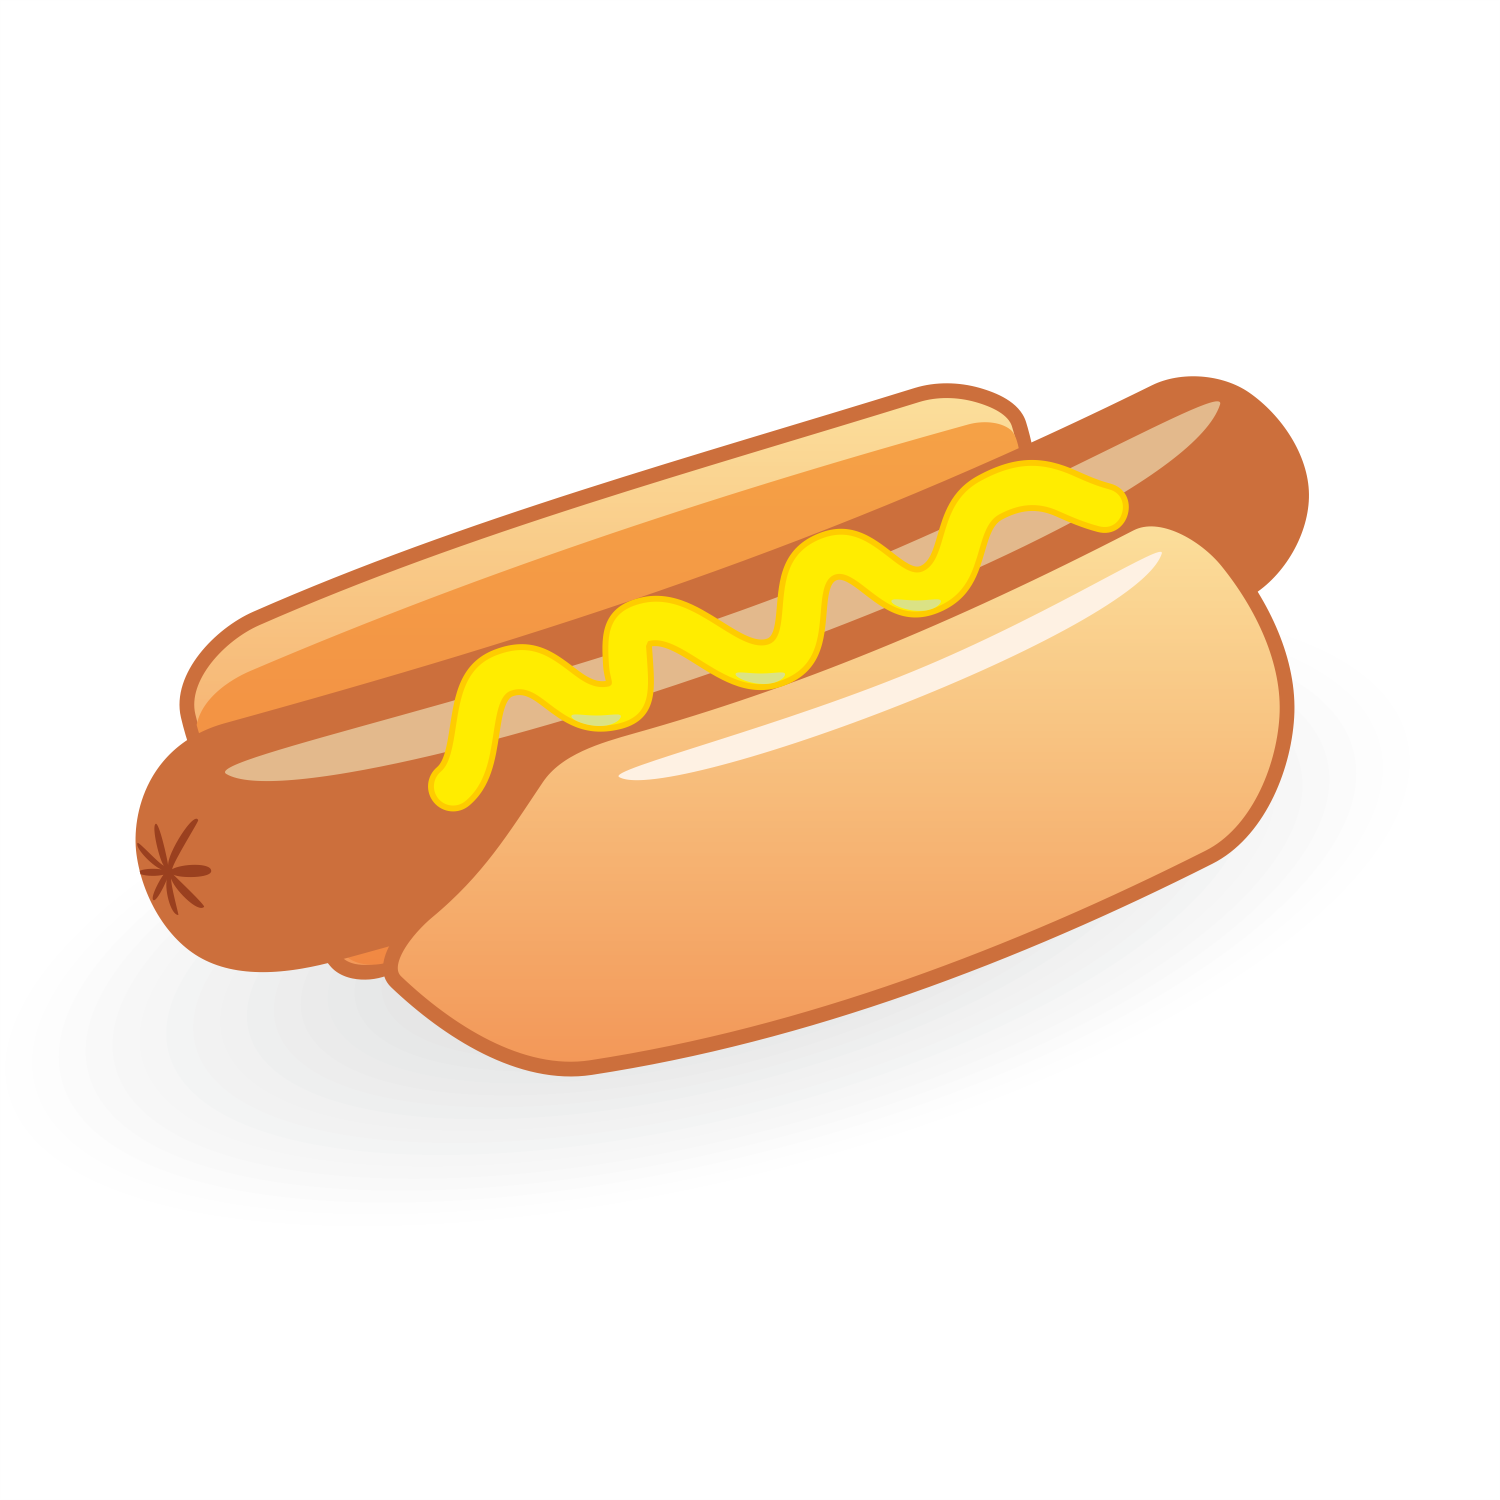 Hotdog Vector - ClipArt Best